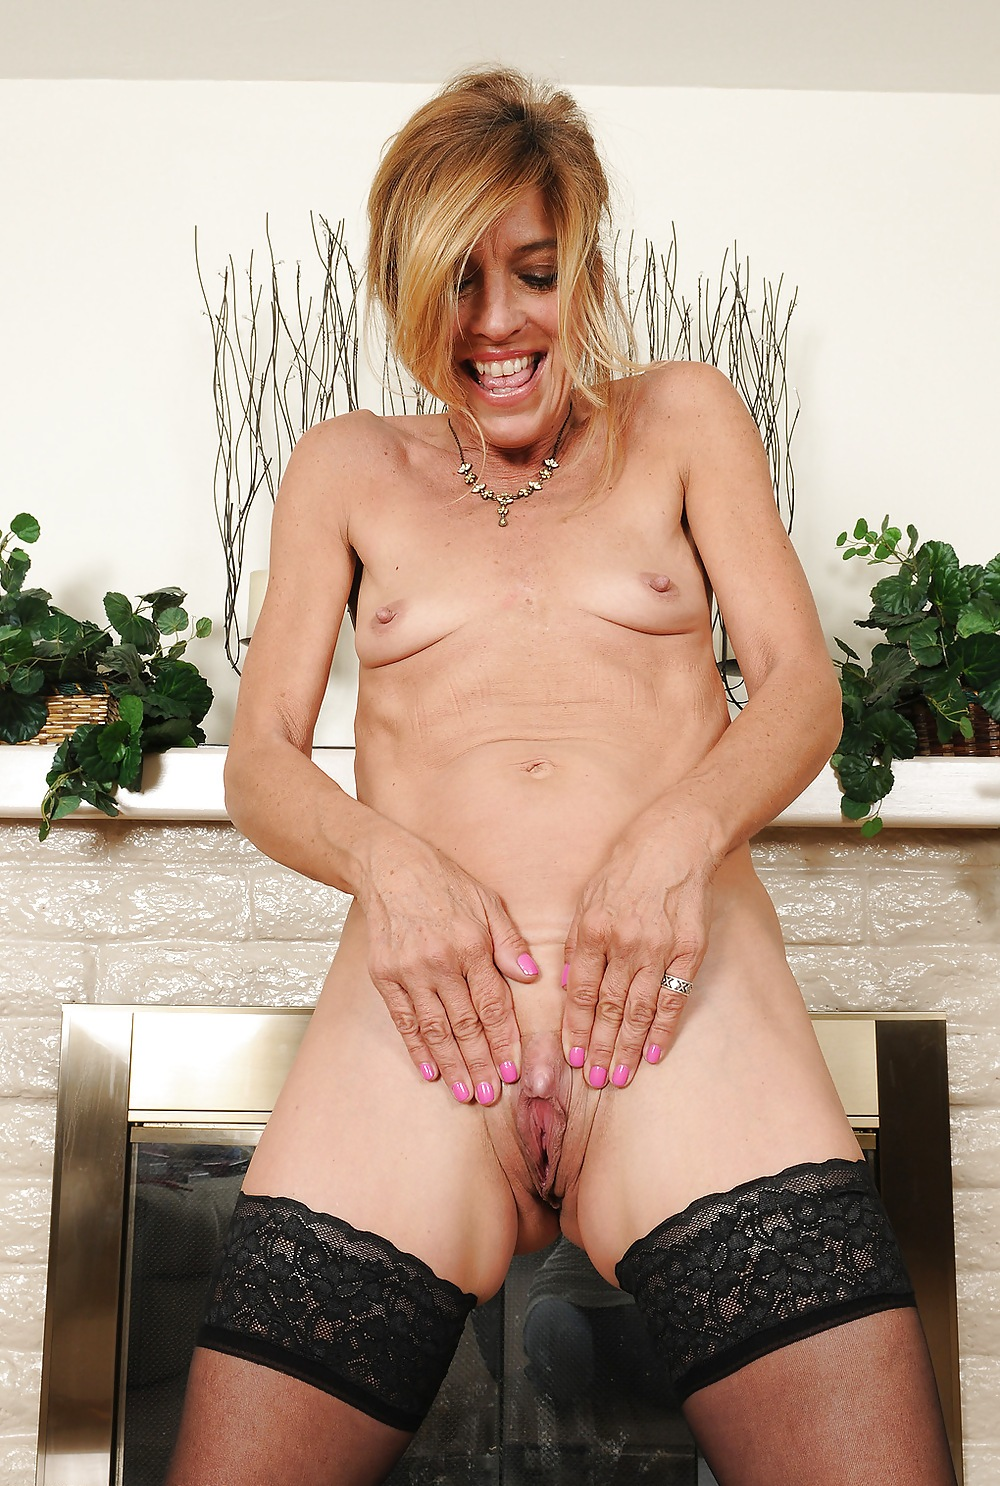 would amateur deepthroat with multiple cumshots amateur assured, that